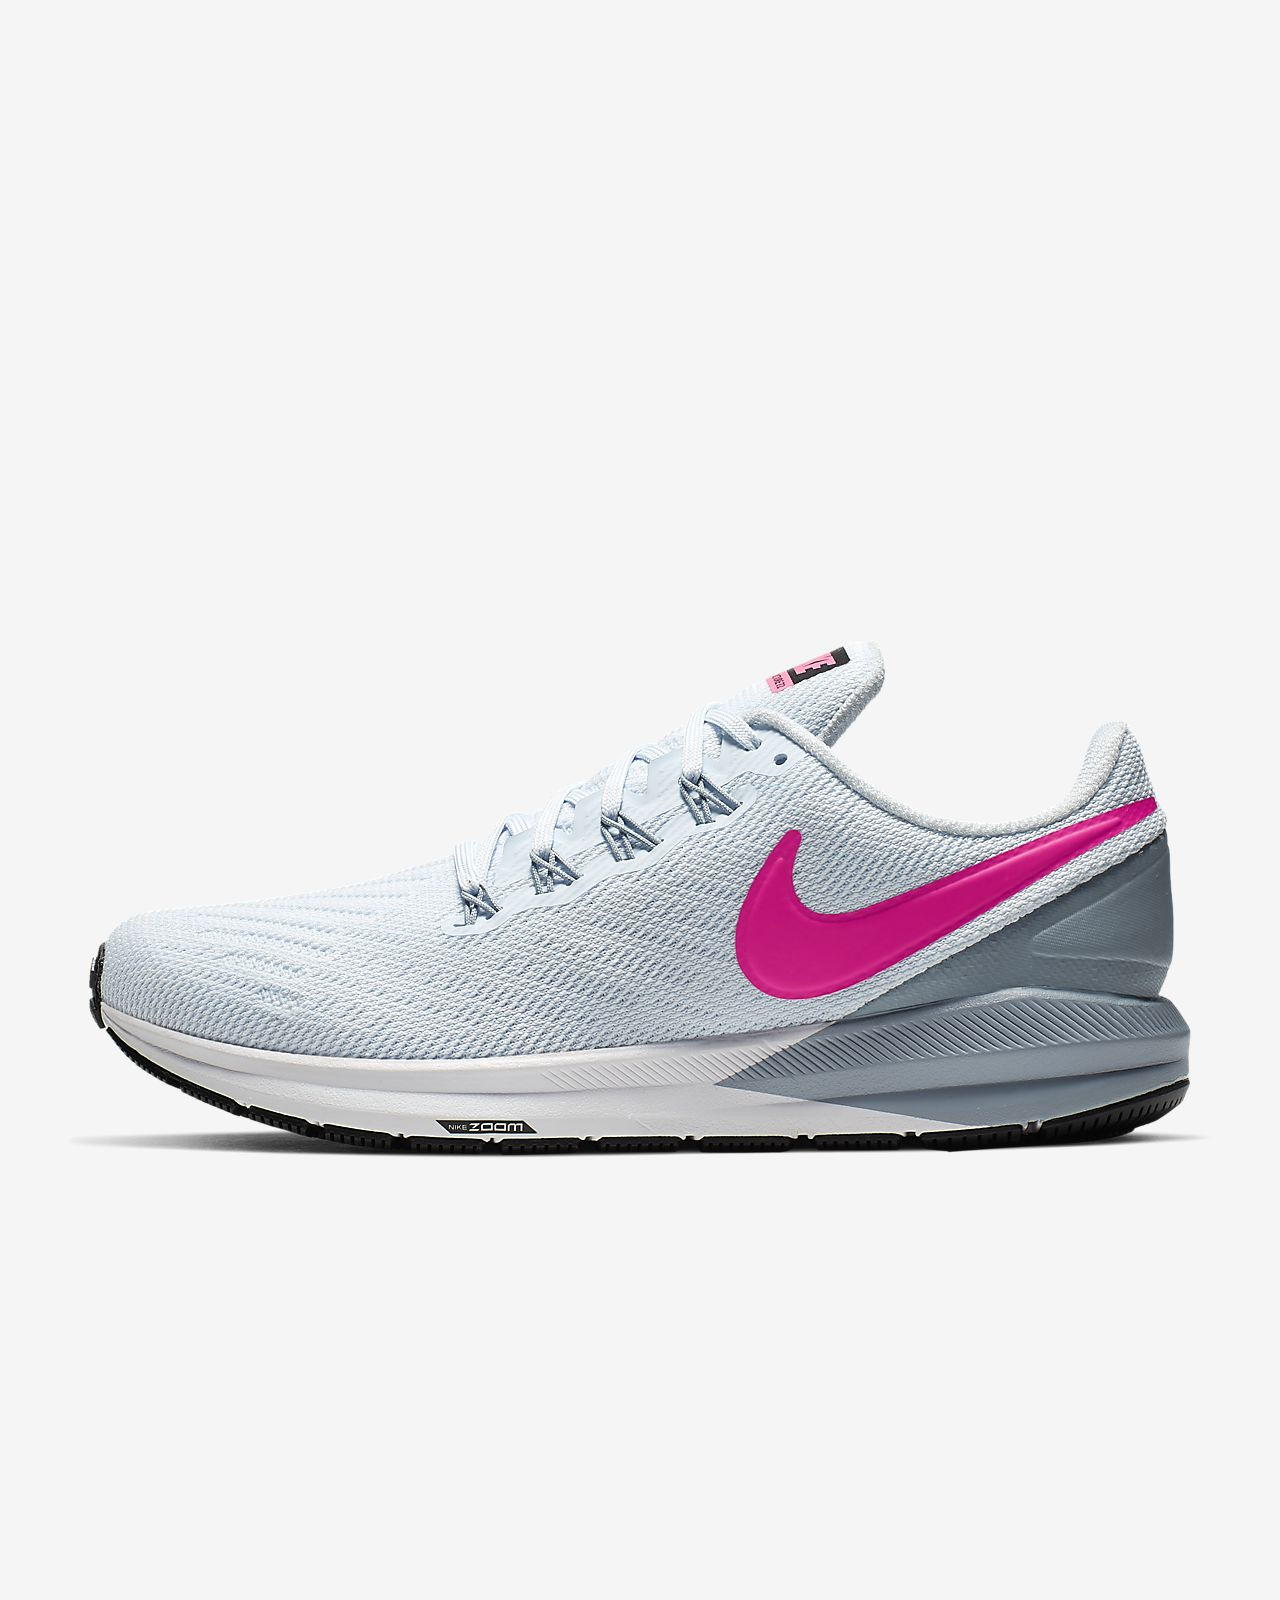 huge selection of a504e 66739 Women s Running Shoe. Nike Air Zoom Structure 22